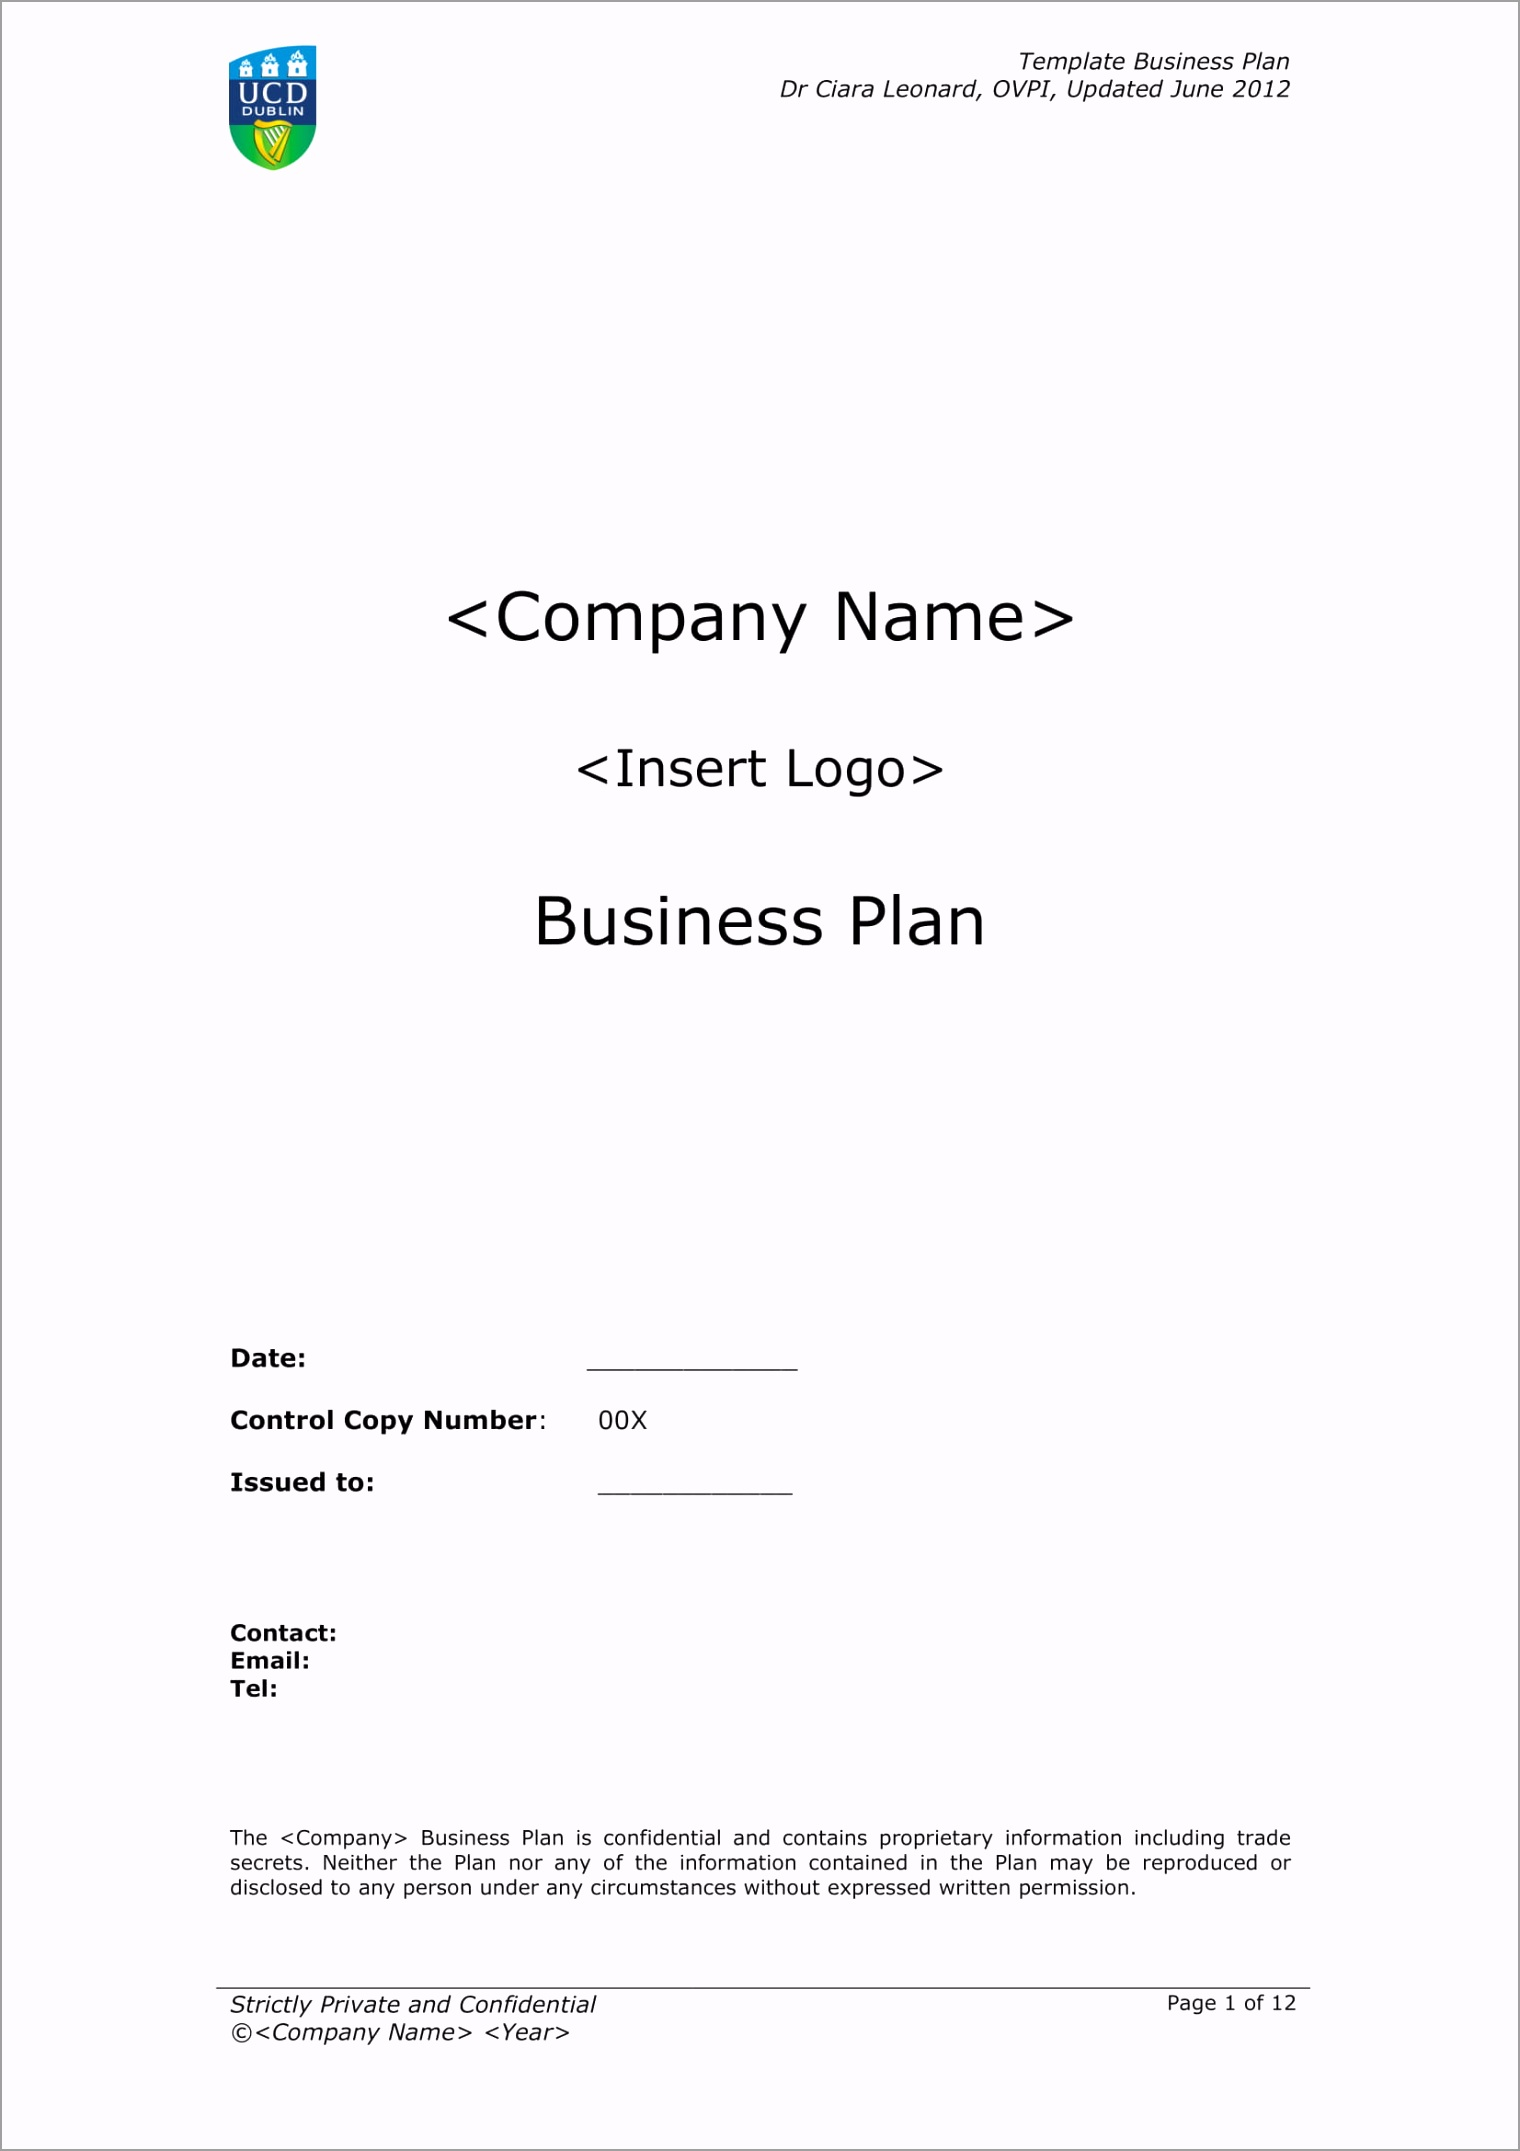 Business Plan Template With Marketing Analysis Example 01 yxyau